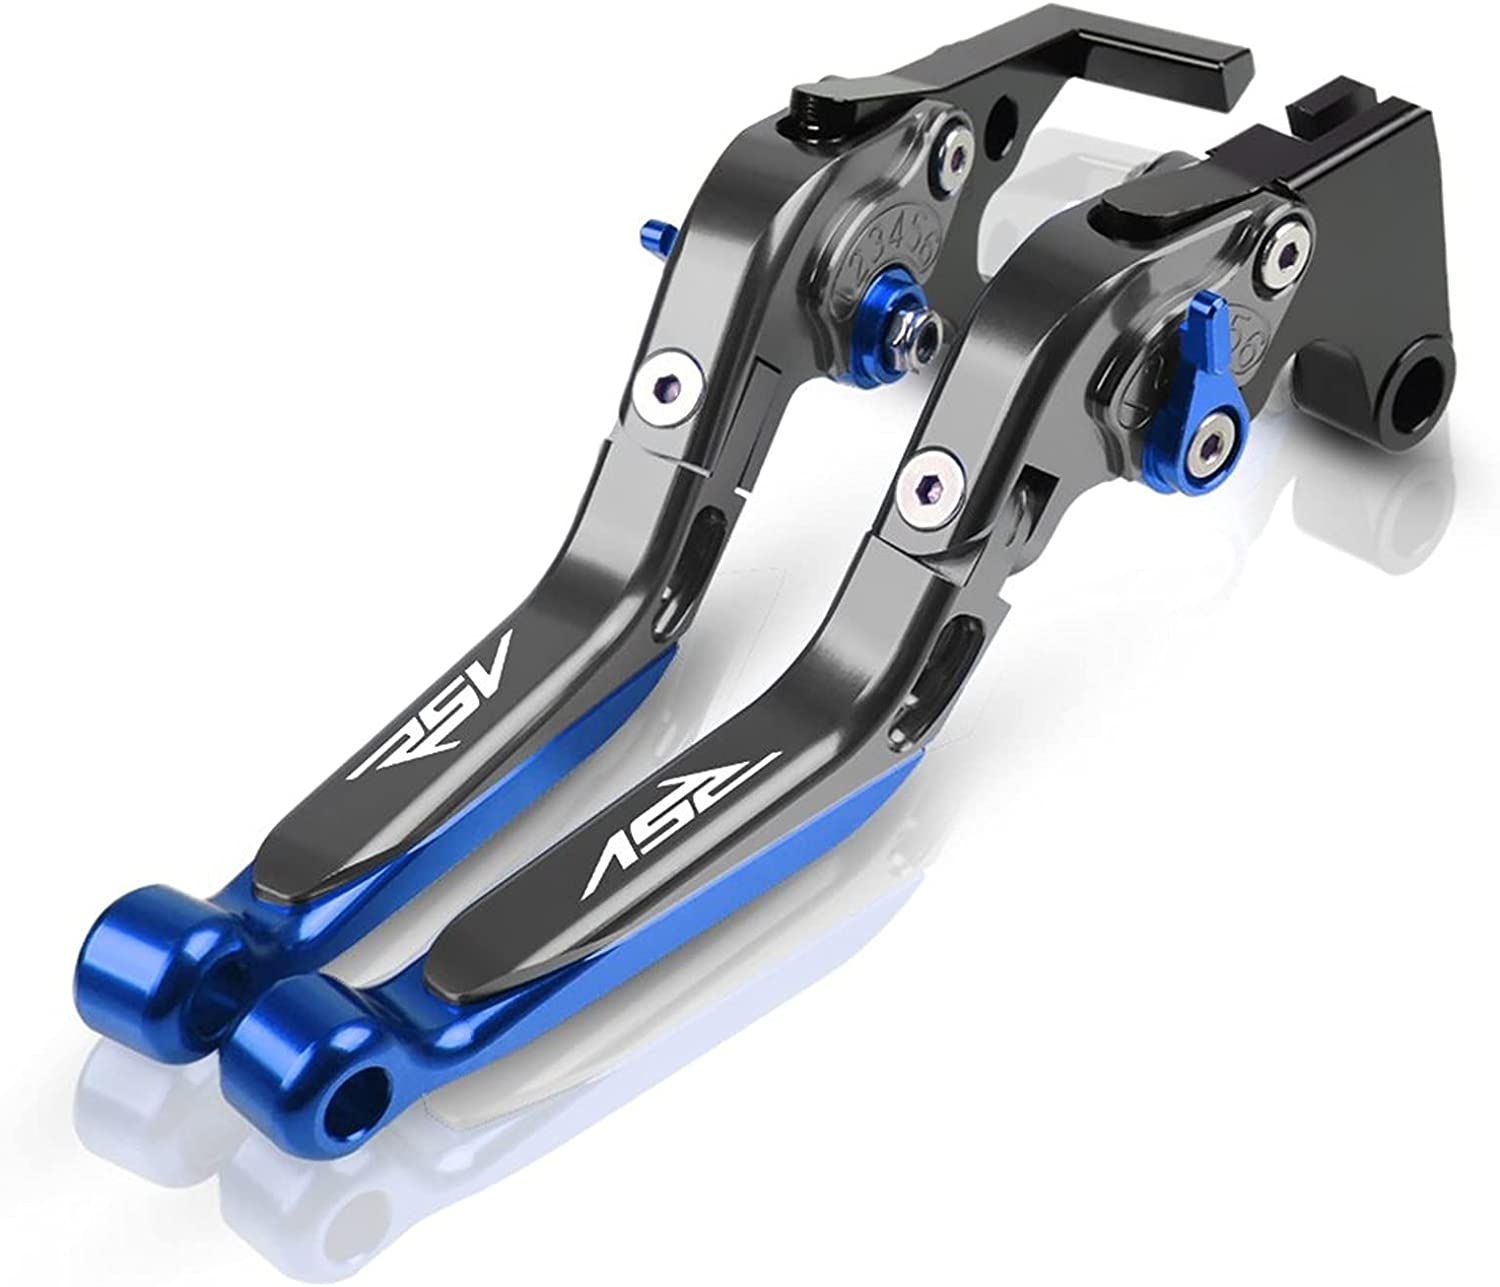 5% OFF JHDS Sports Brake Clutch Motorcycle Extendable Sale item Adjustable Levers